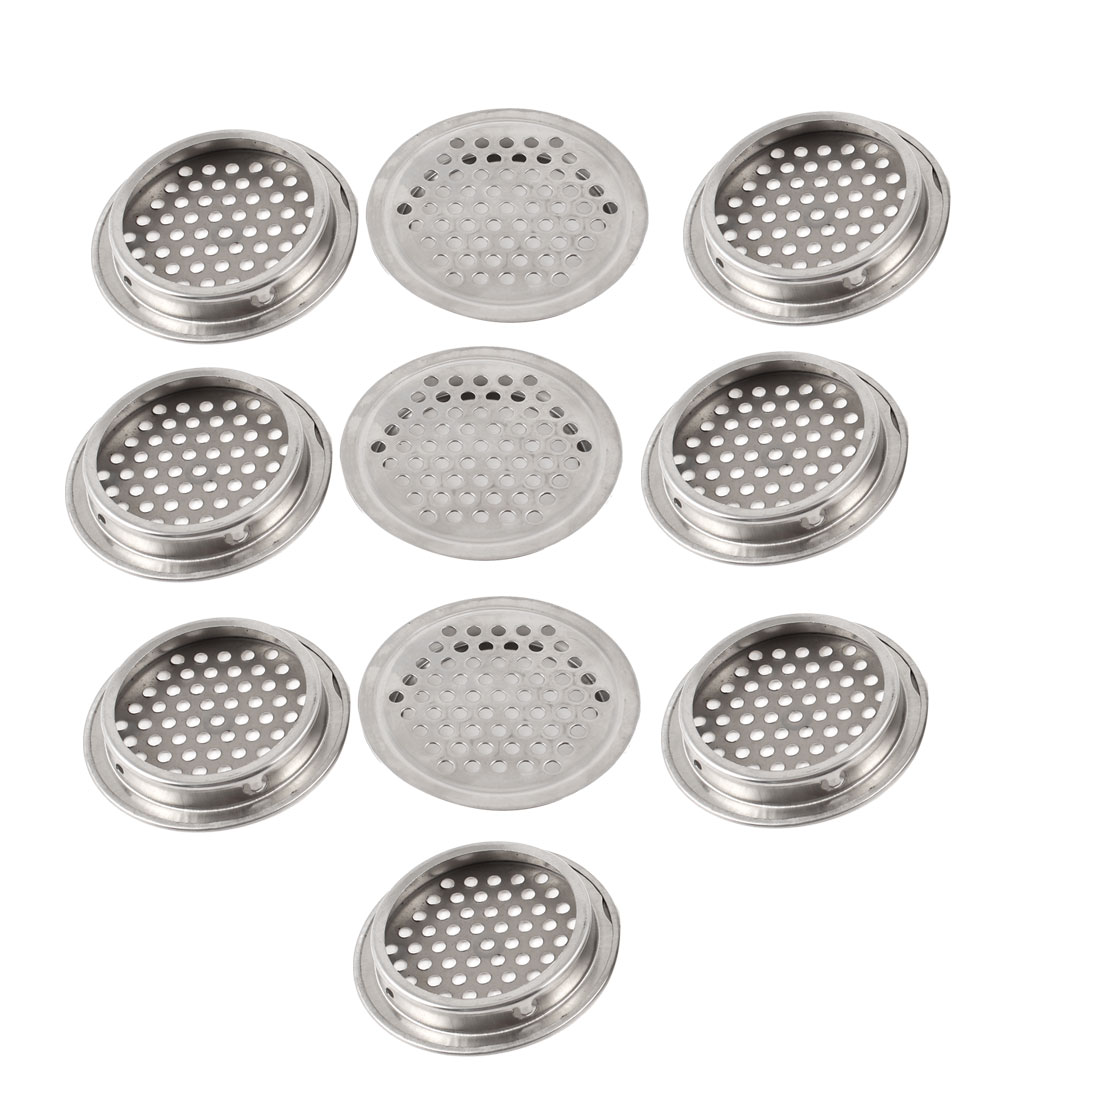 "Kitchen Silver Tone Metal 2.5"" Diameter 3.5mm Hole Sink Strainer Drainer 10 Pcs"